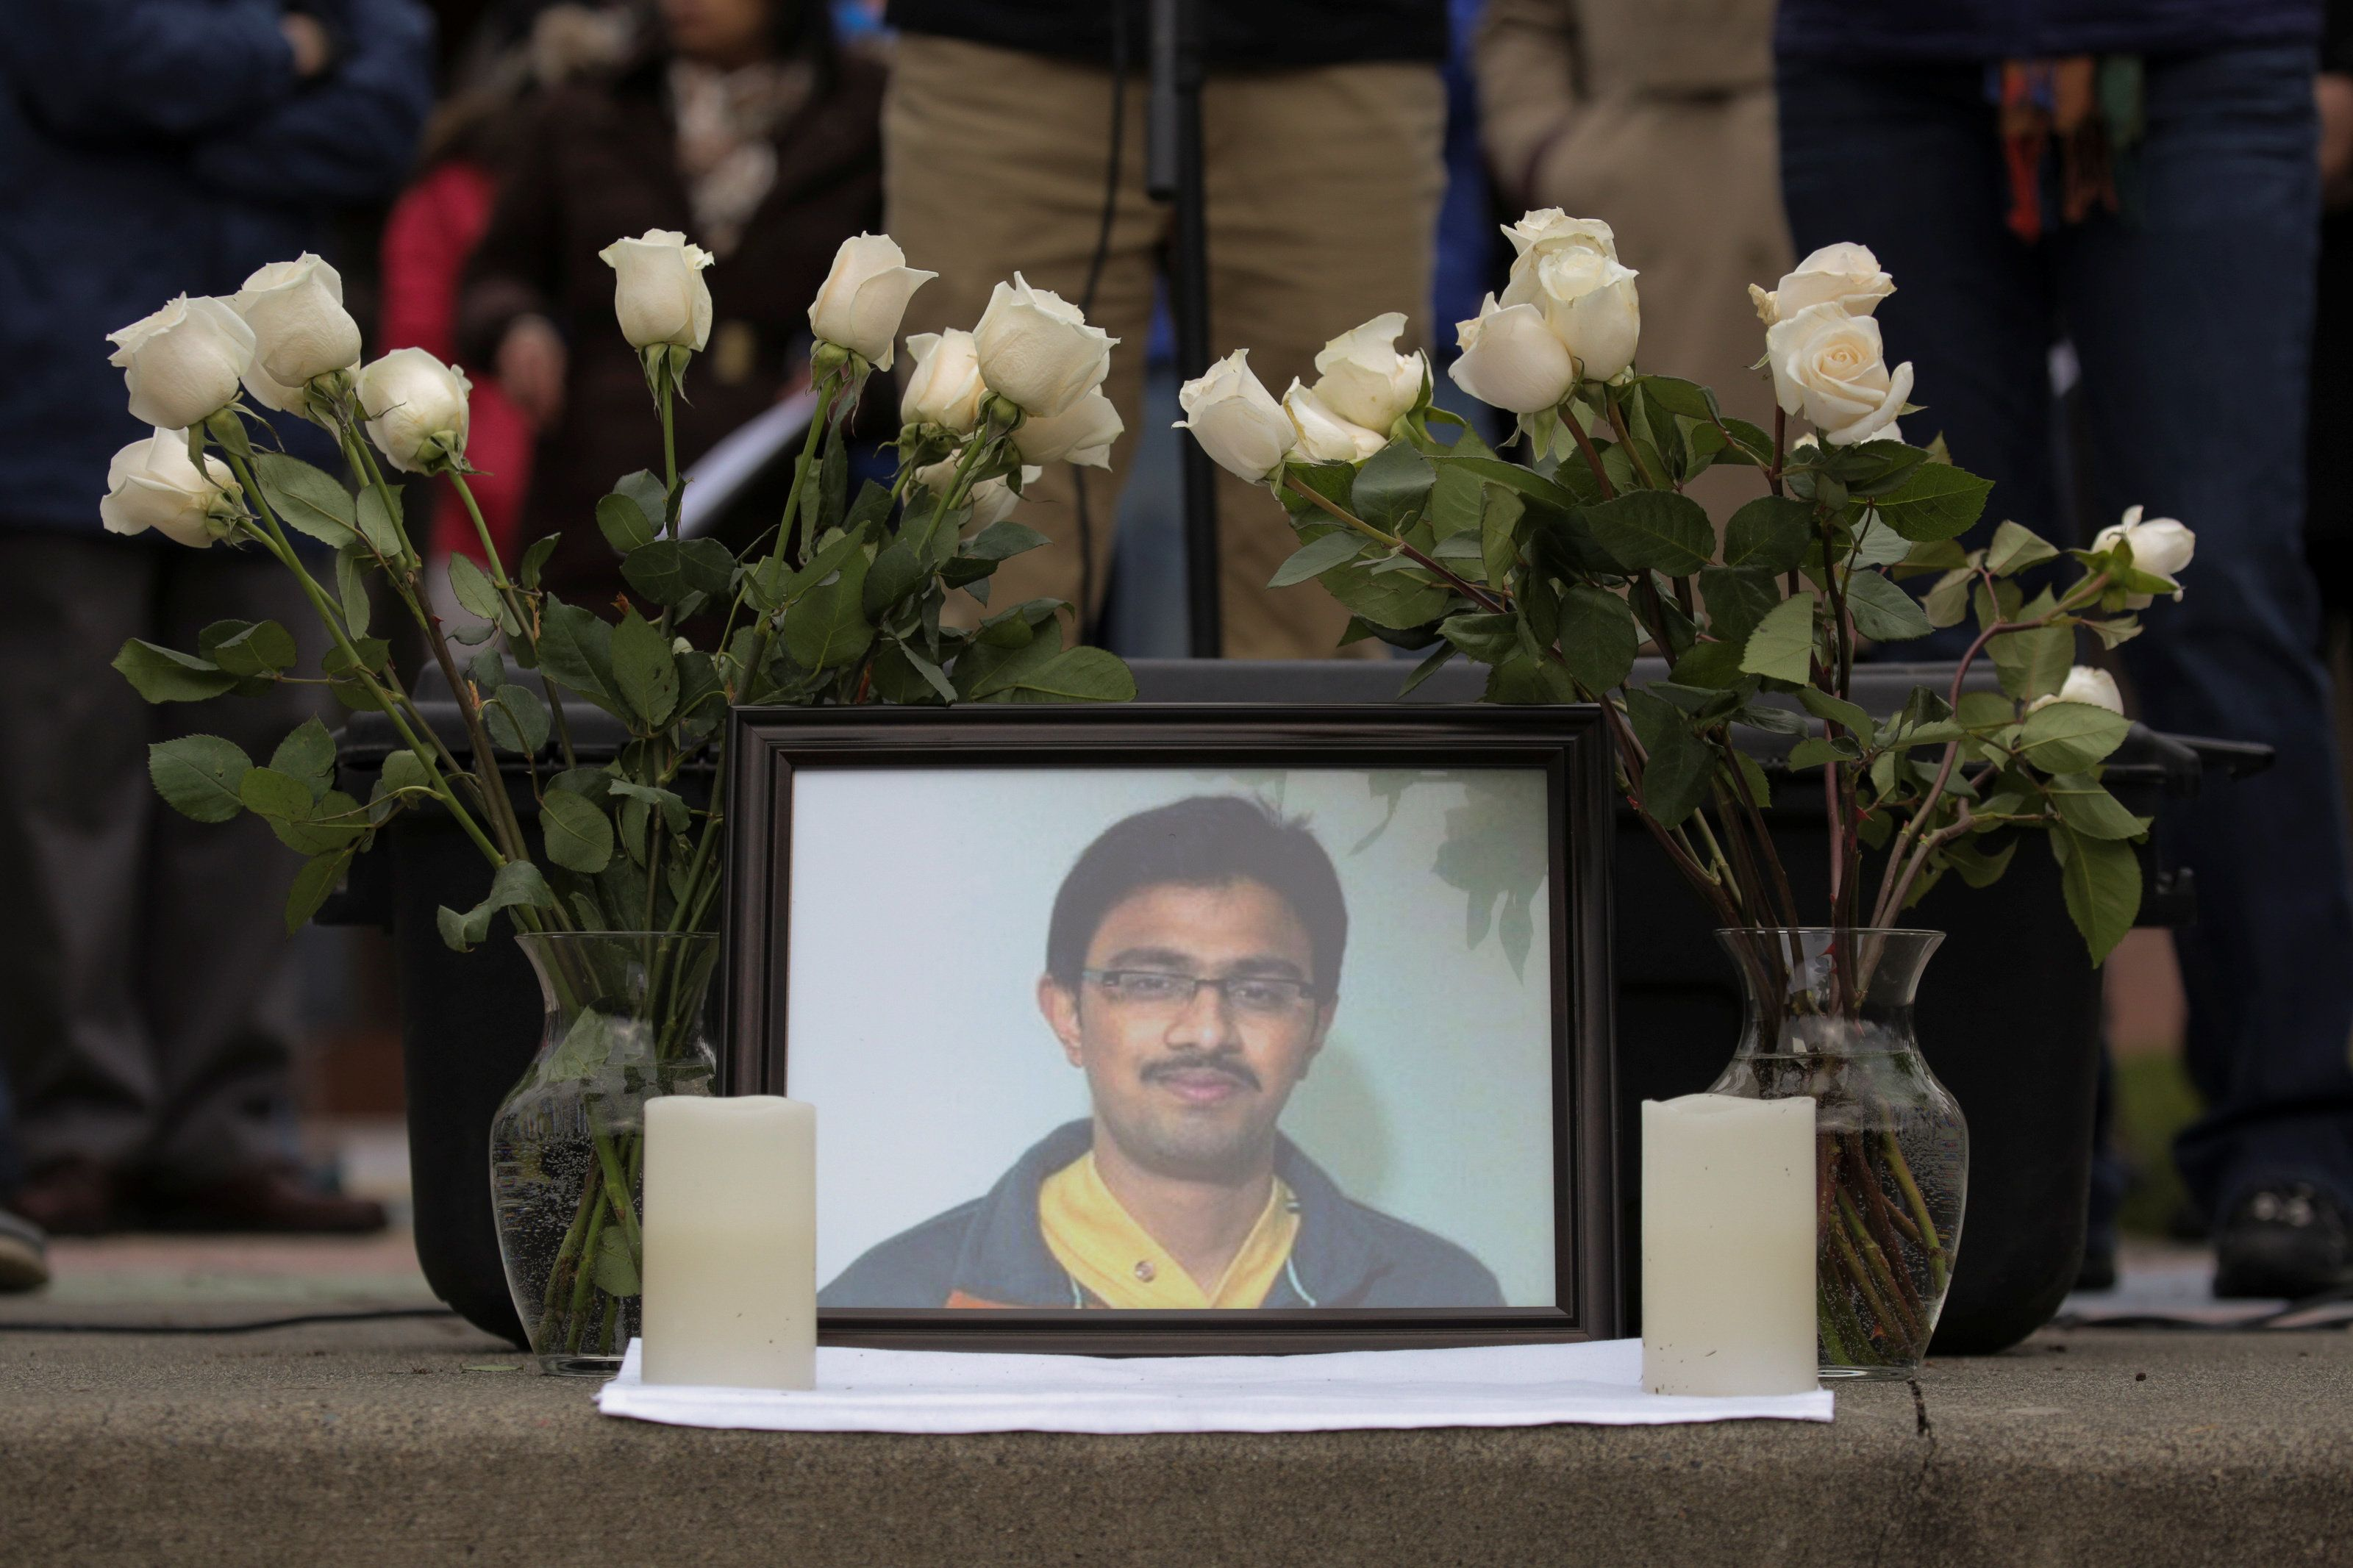 A picture of Srinivas Kuchibhotla, an immigrant from India who was recently shot and killed in Kansas,...